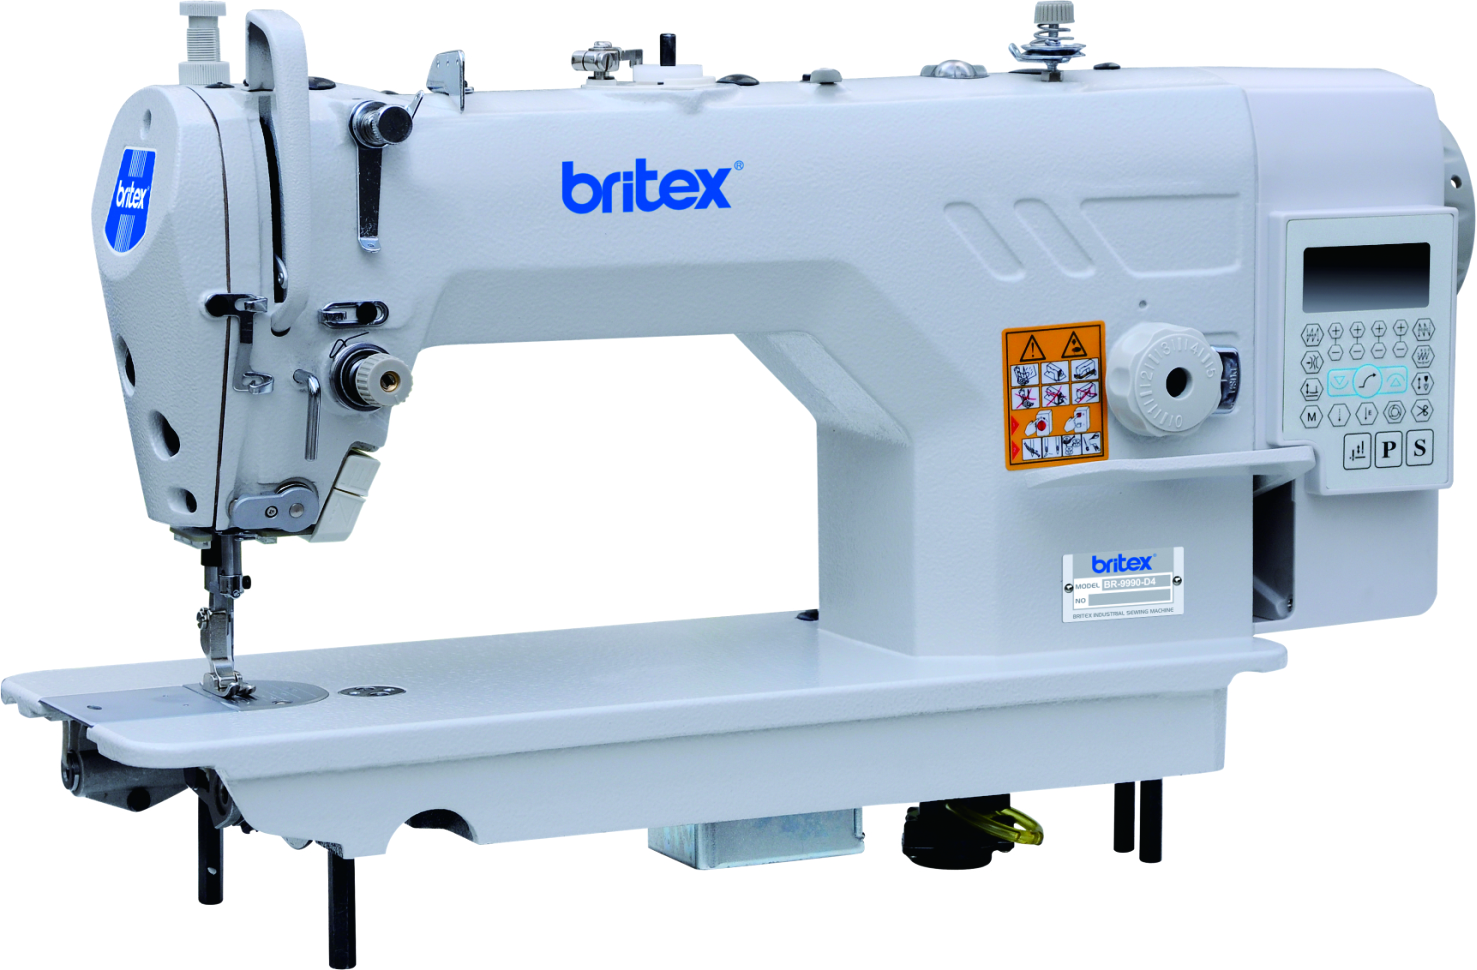 Electronic sewing machine Britex Needle Lockstitch - 9910D4